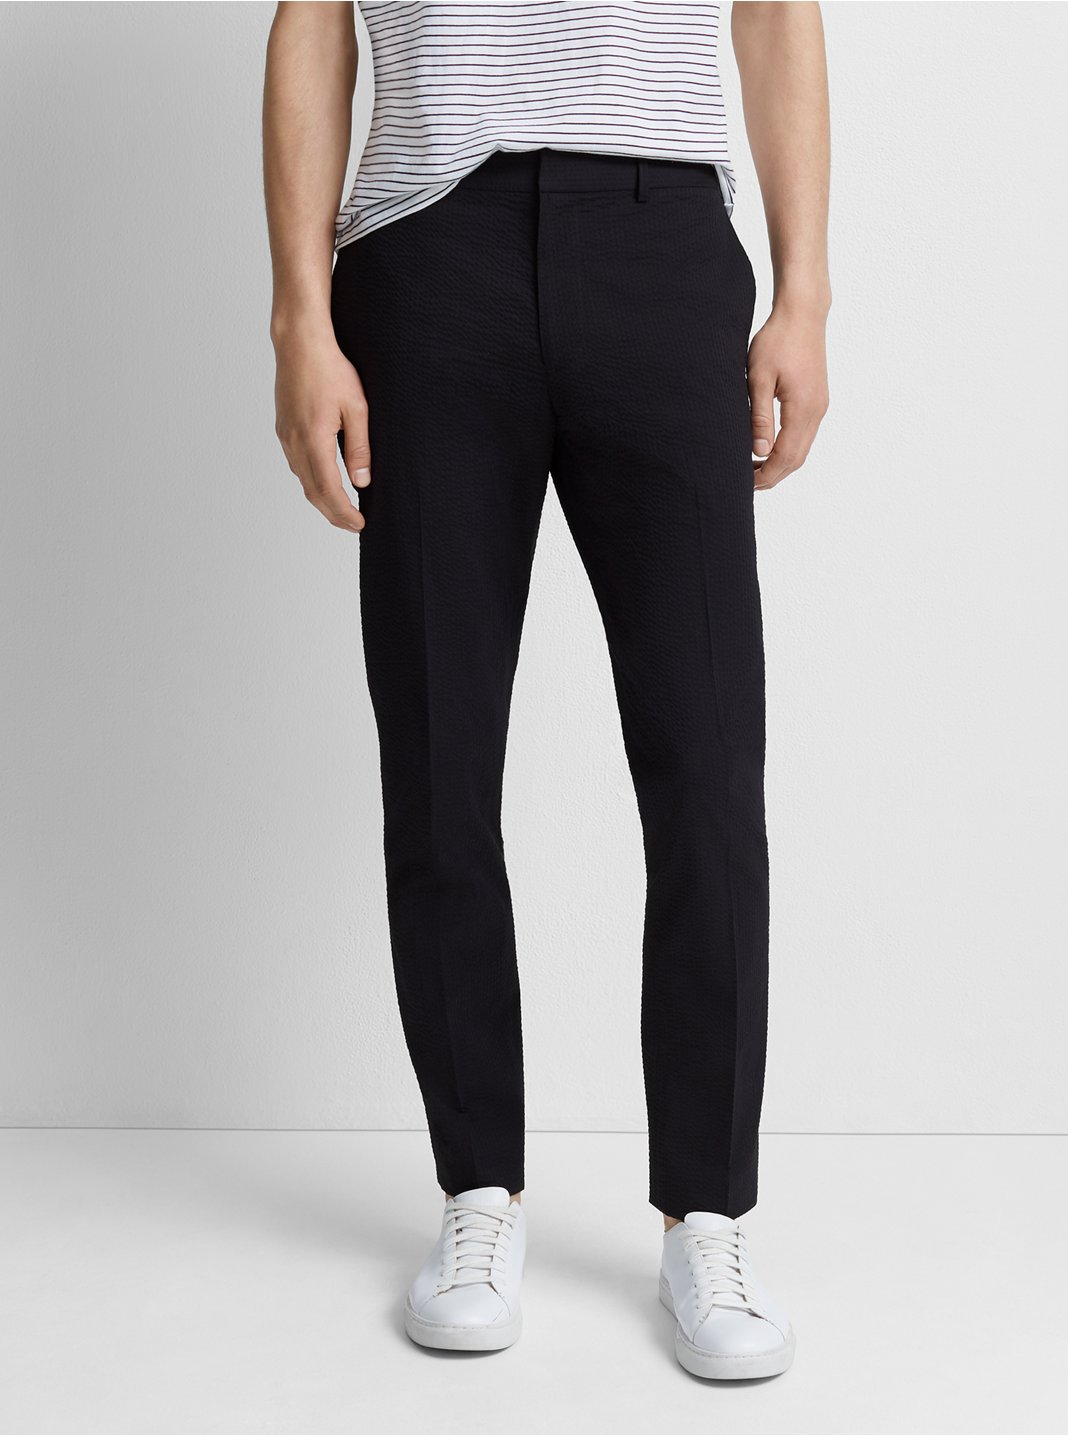 Sutton Seersucker Dress Pant